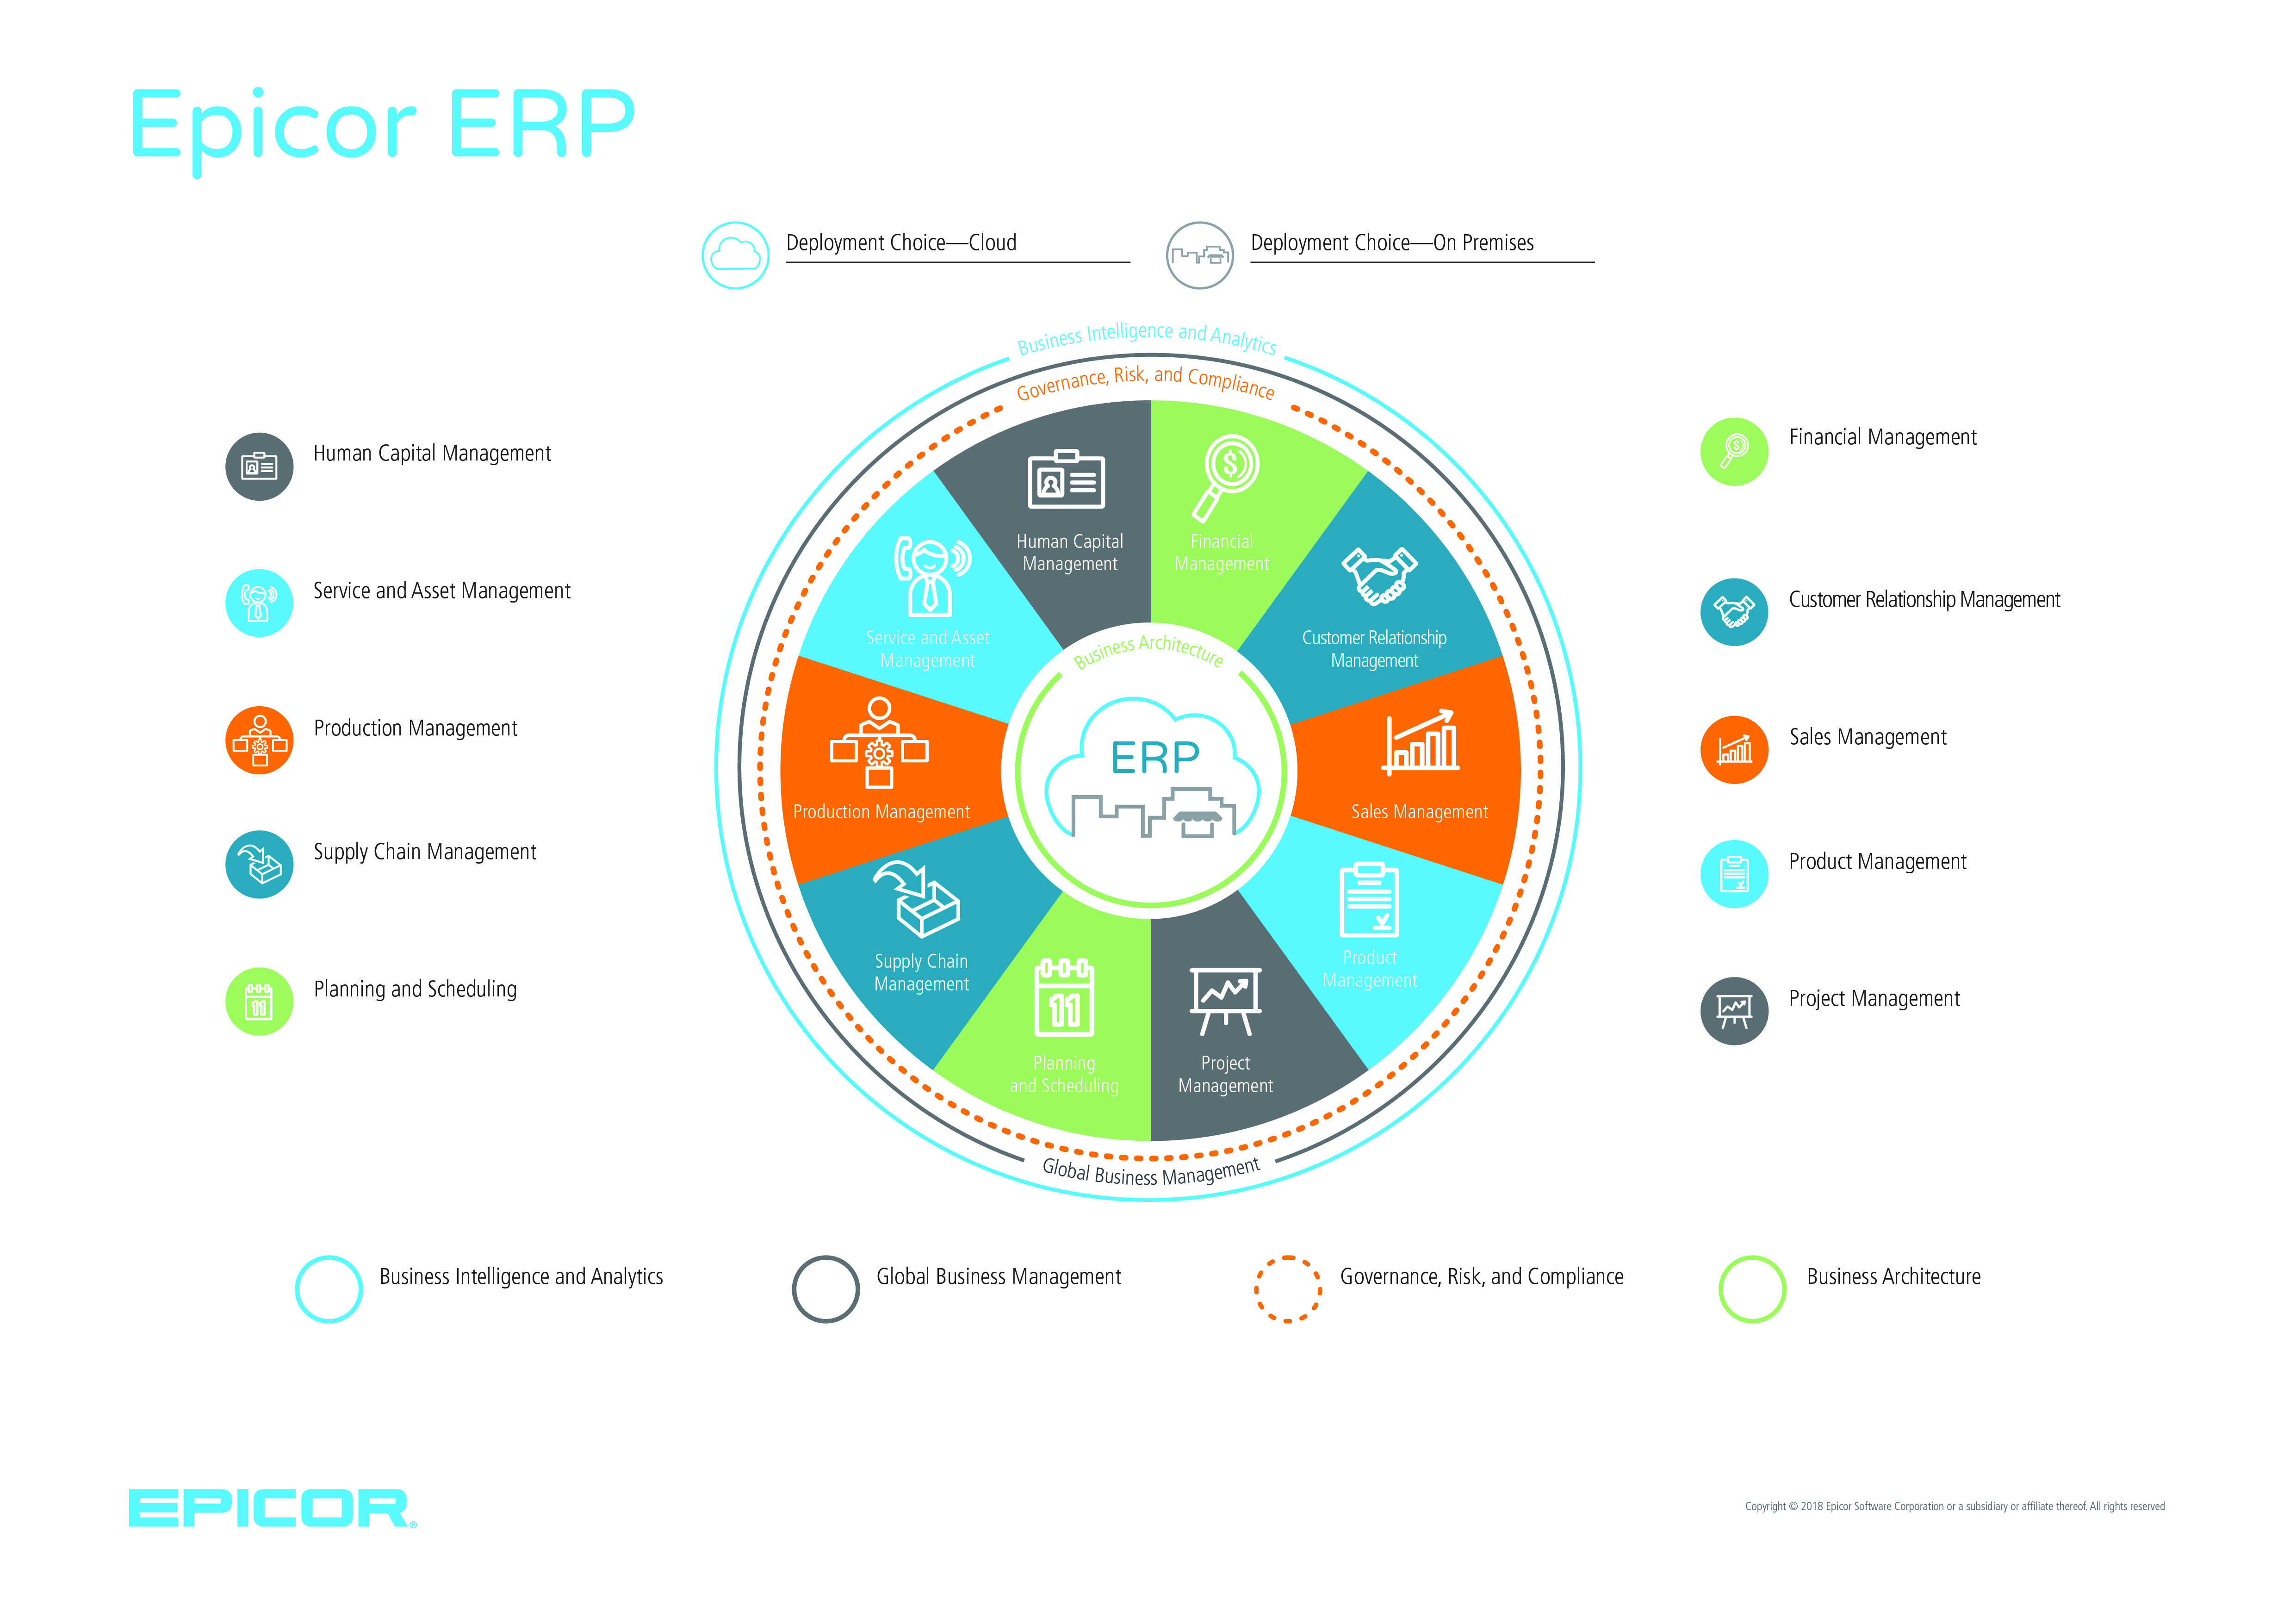 Epicor ERP wheel diagram with names of modules available in Epicor ERP 10